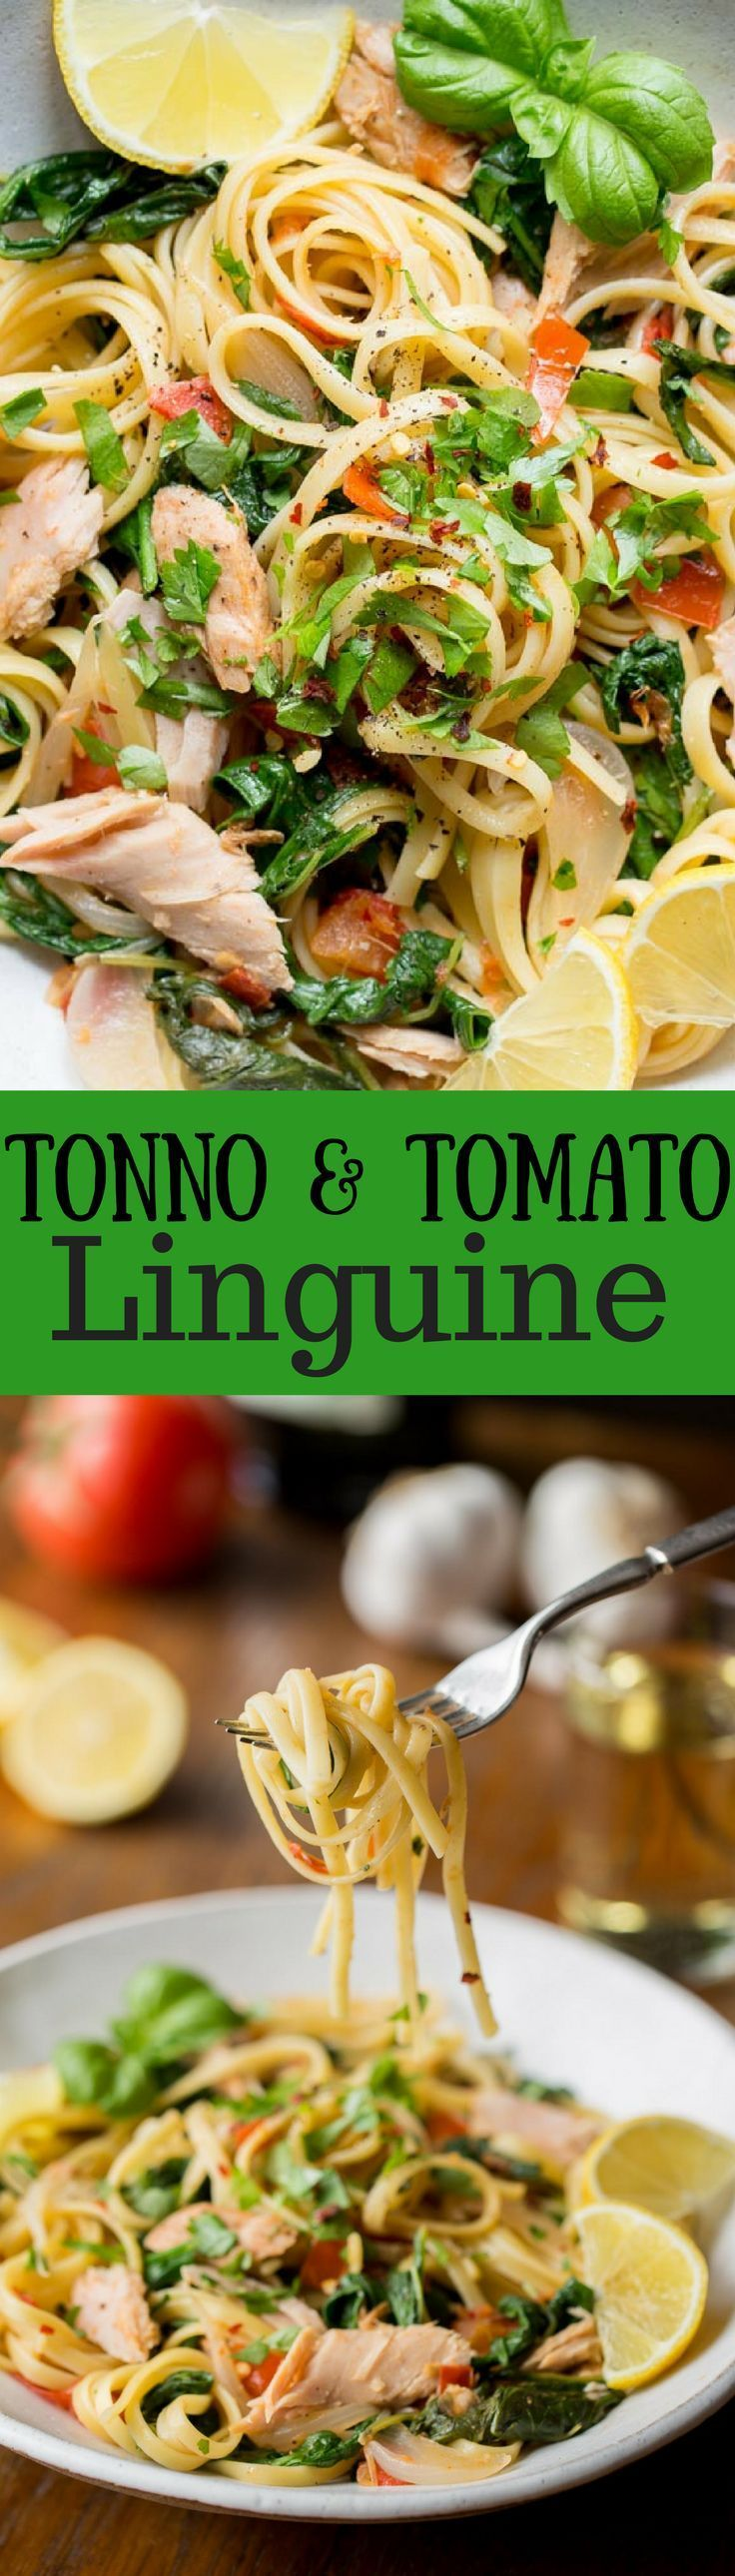 Tonno & Tomato Linguine with sweet onion and arugula ~ a delicious, quick and nutritious recipe that comes together in minutes!  http://www.savingdessert.com